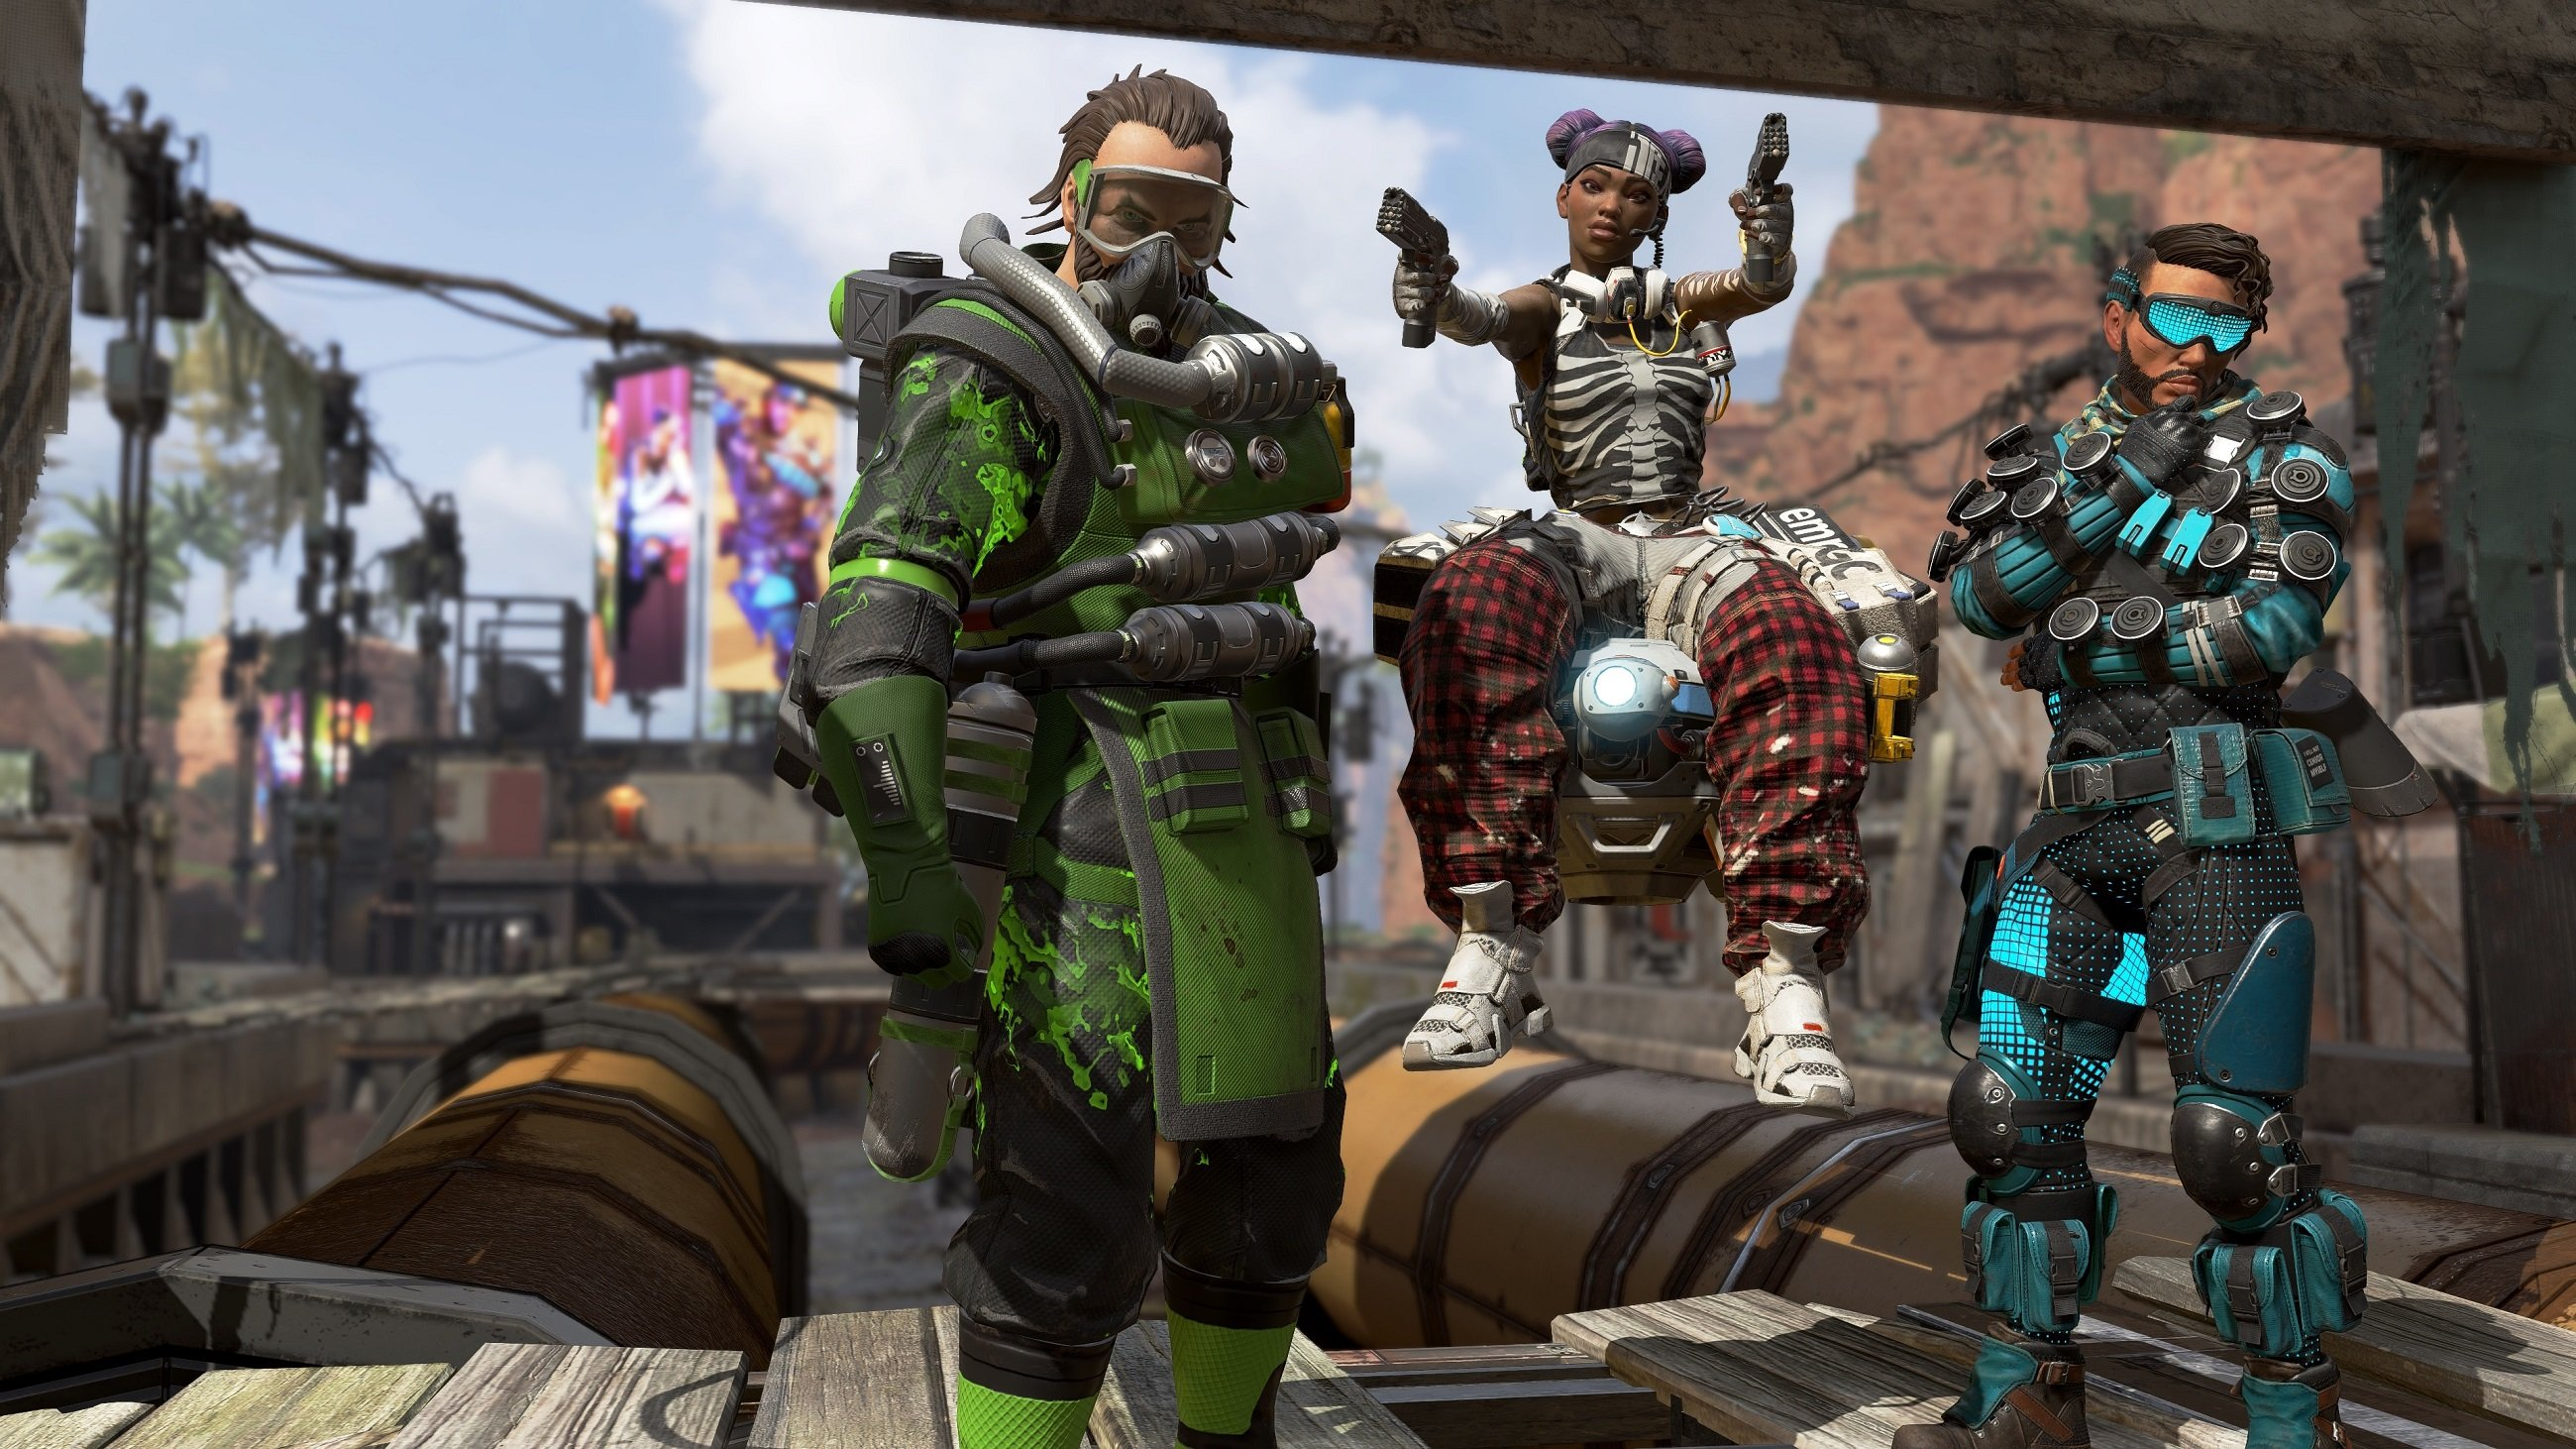 The best characters in Apex Legends - Tier List